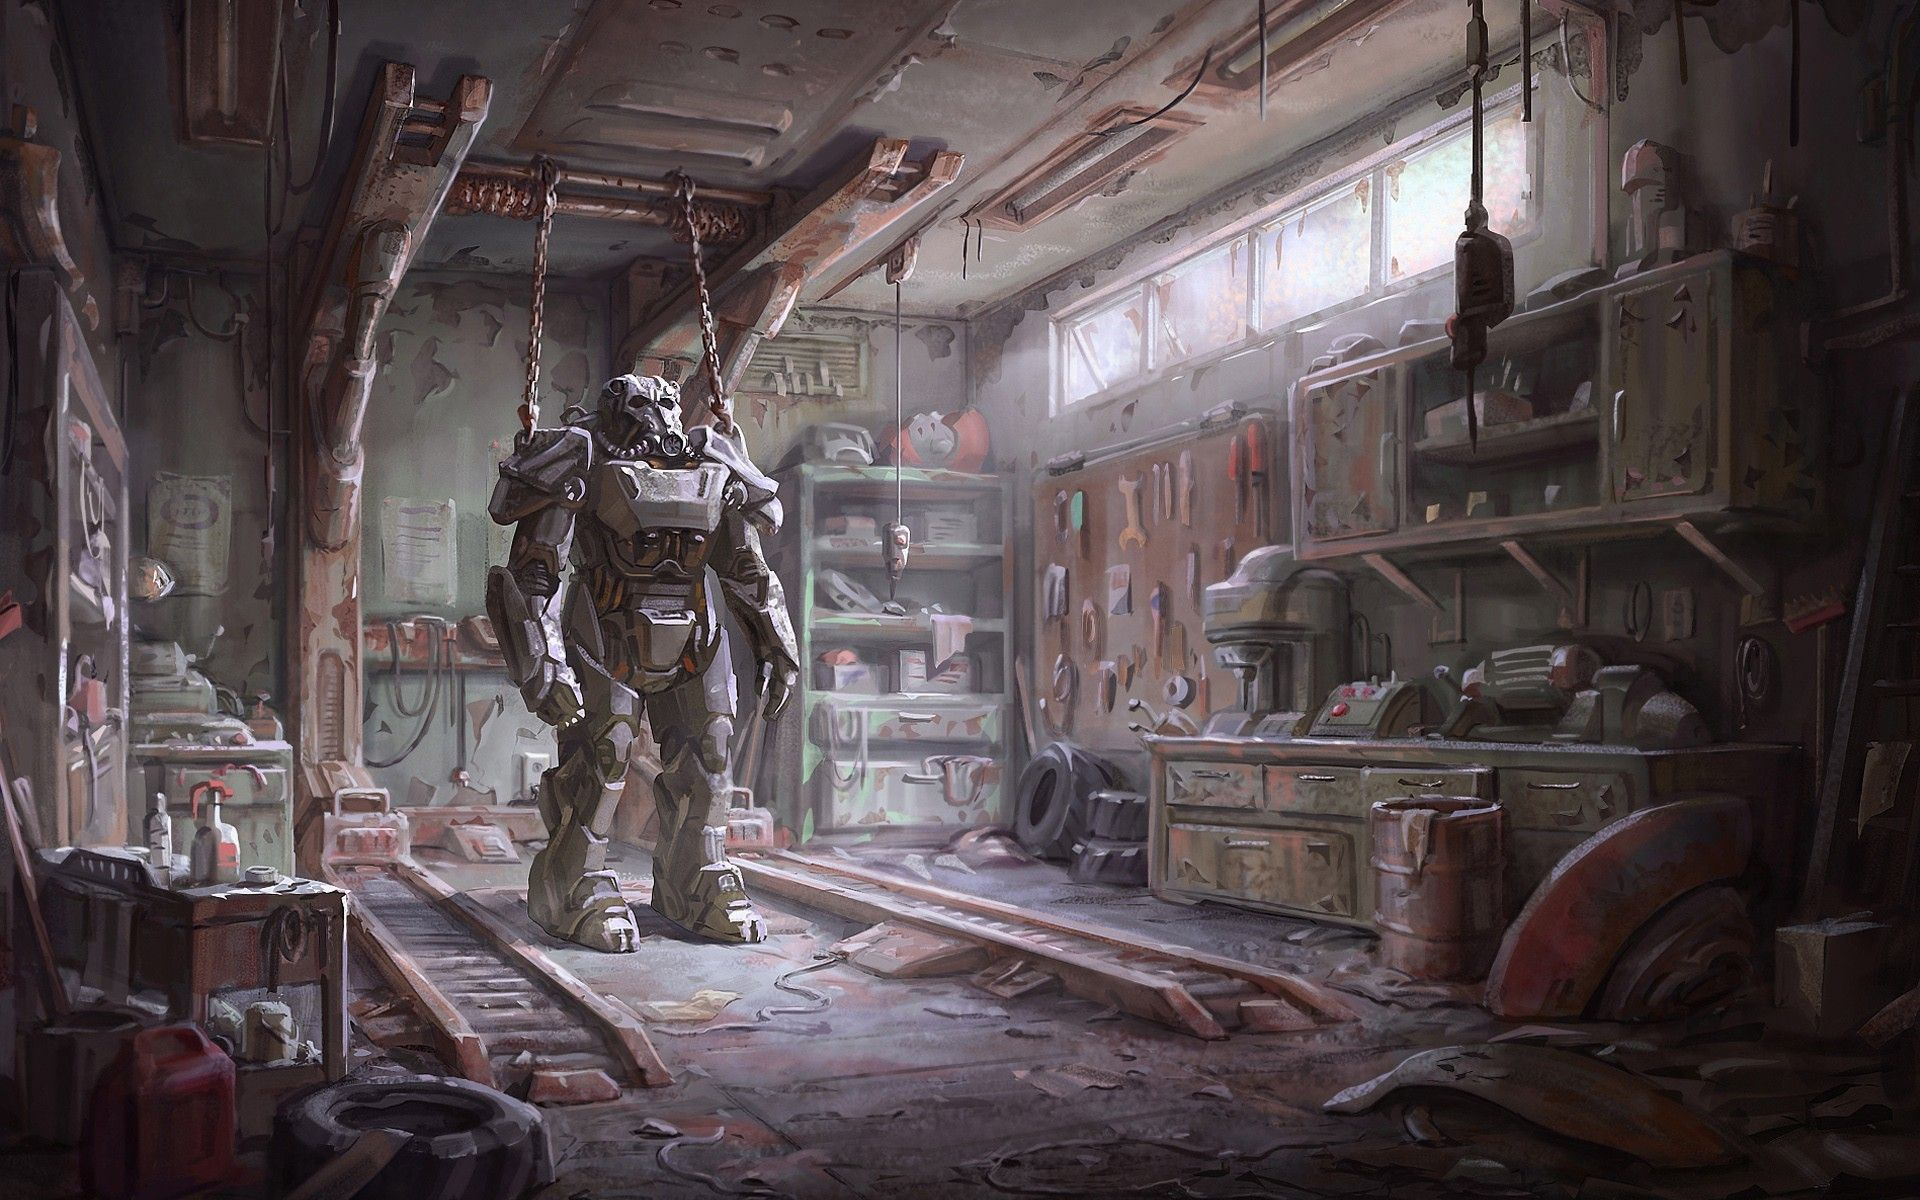 Fallout 4 4k Wallpapers On Wallpaperdog